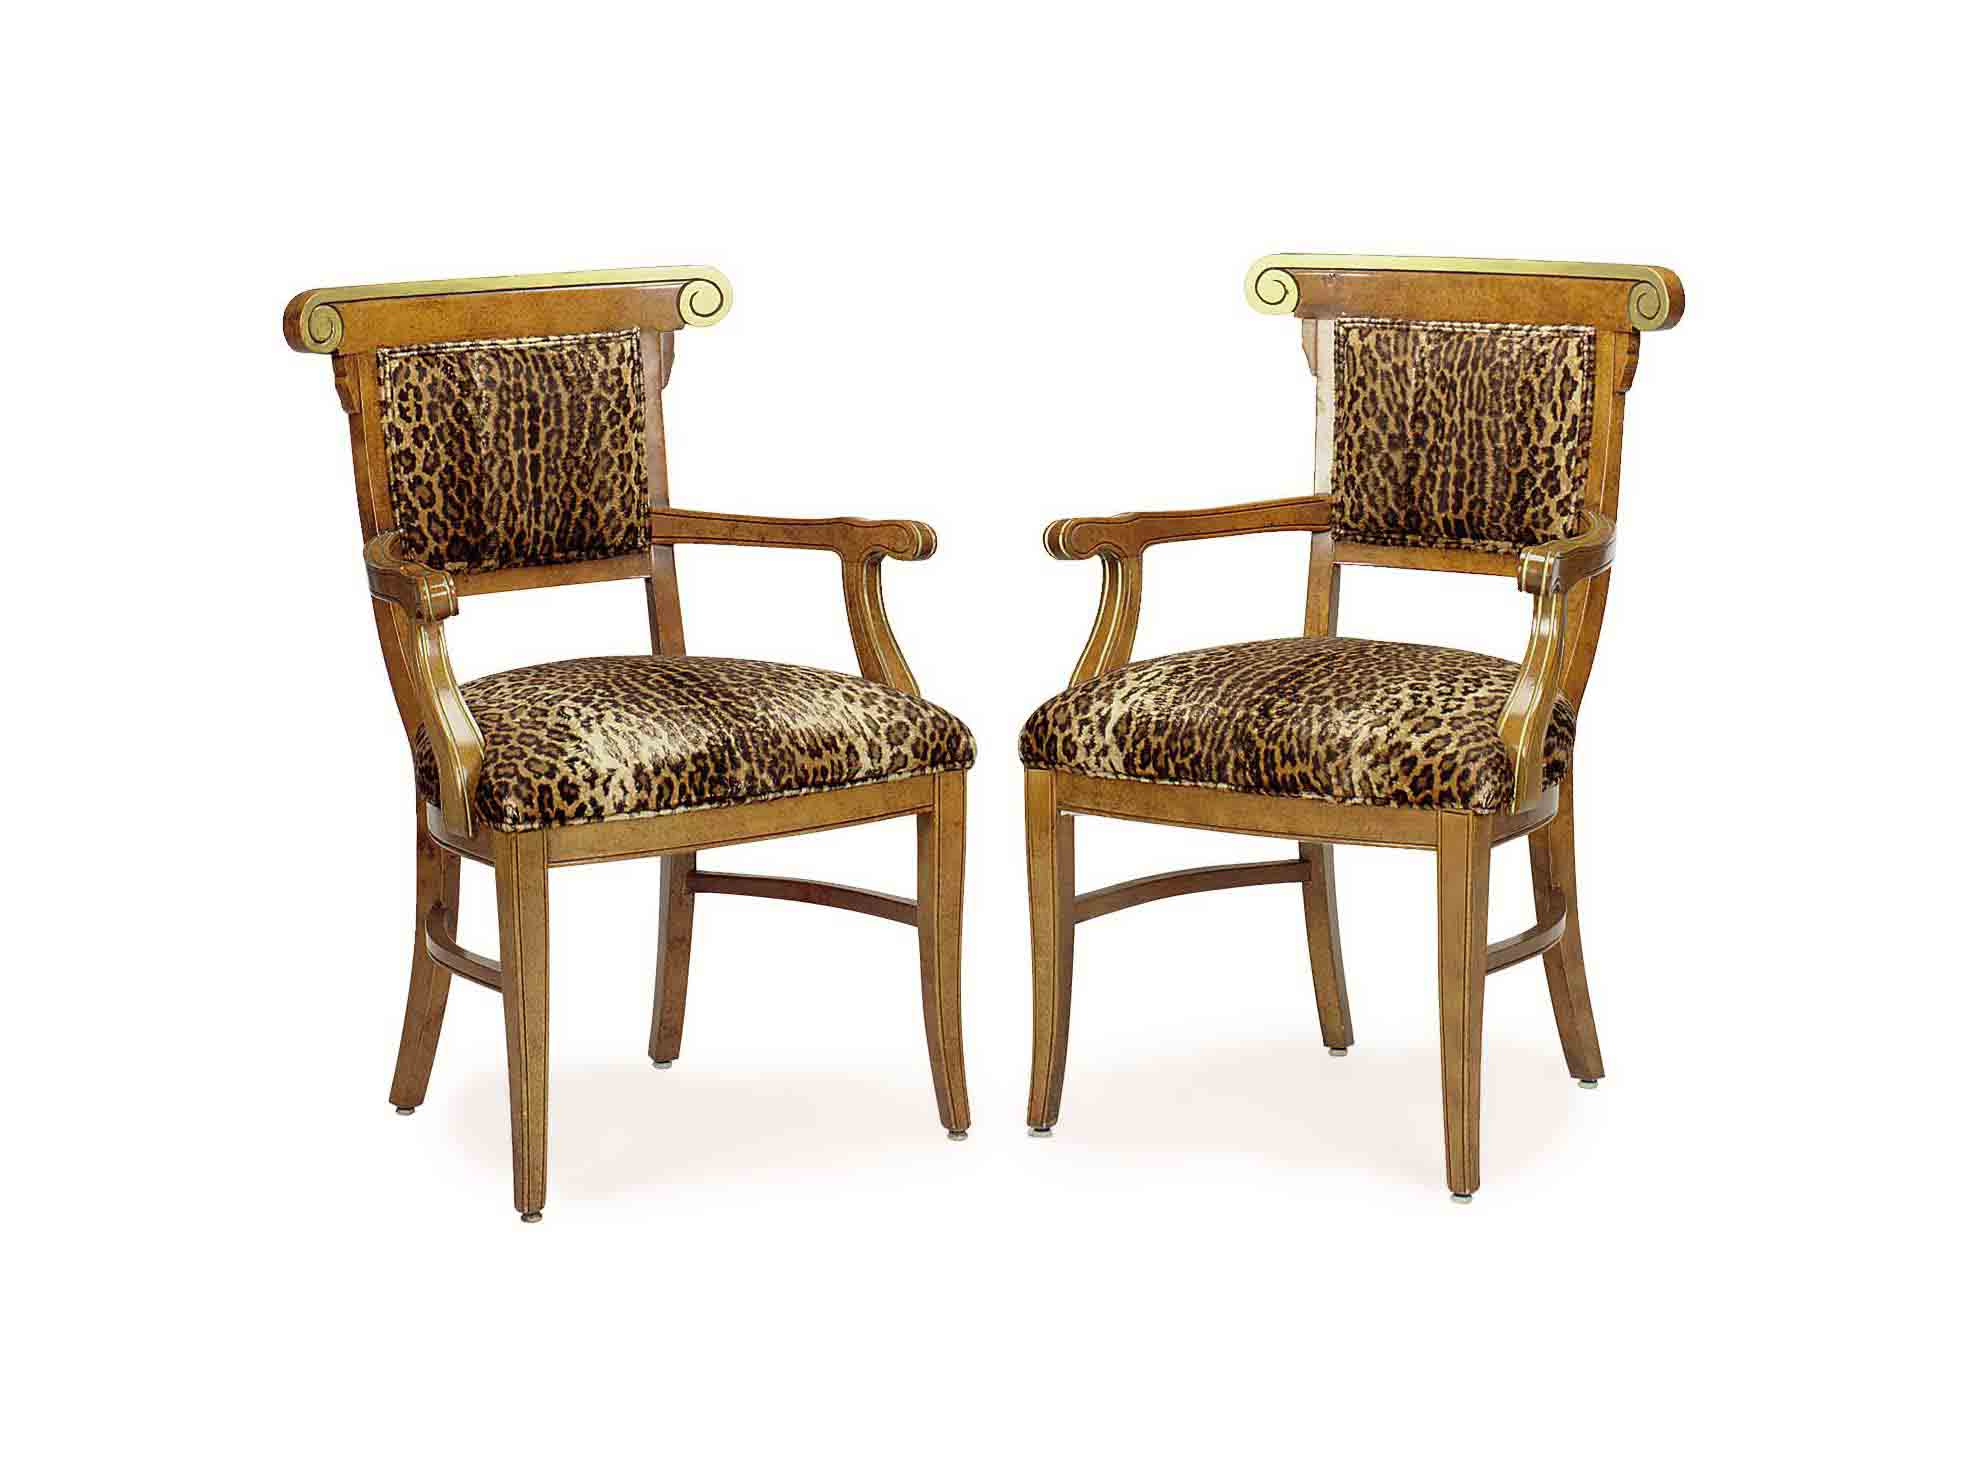 A PAIR OF PARCEL GILT FRUIWOOD